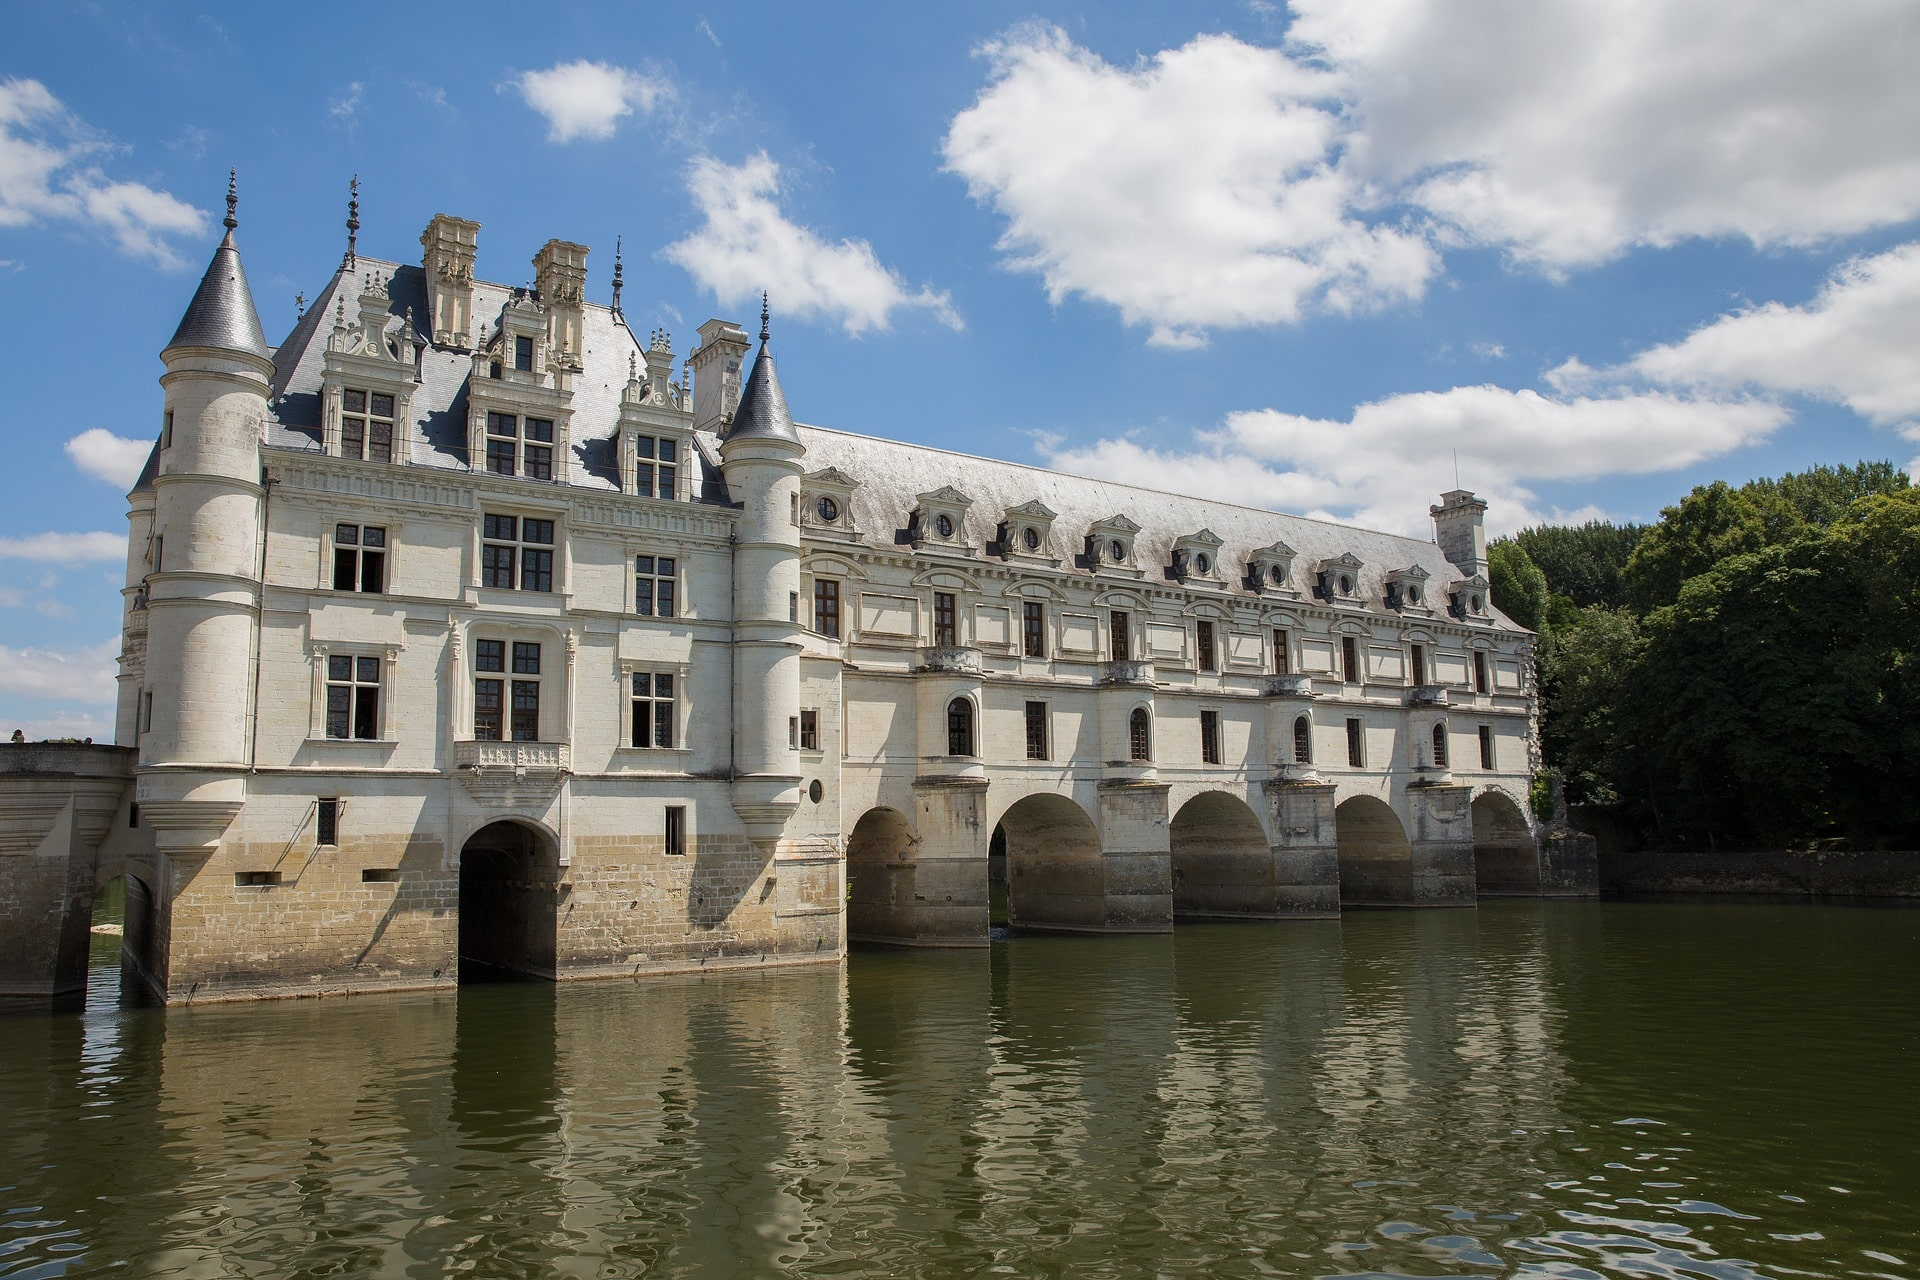 The châteaux of the Loire Valley are some of the best places to visit in France